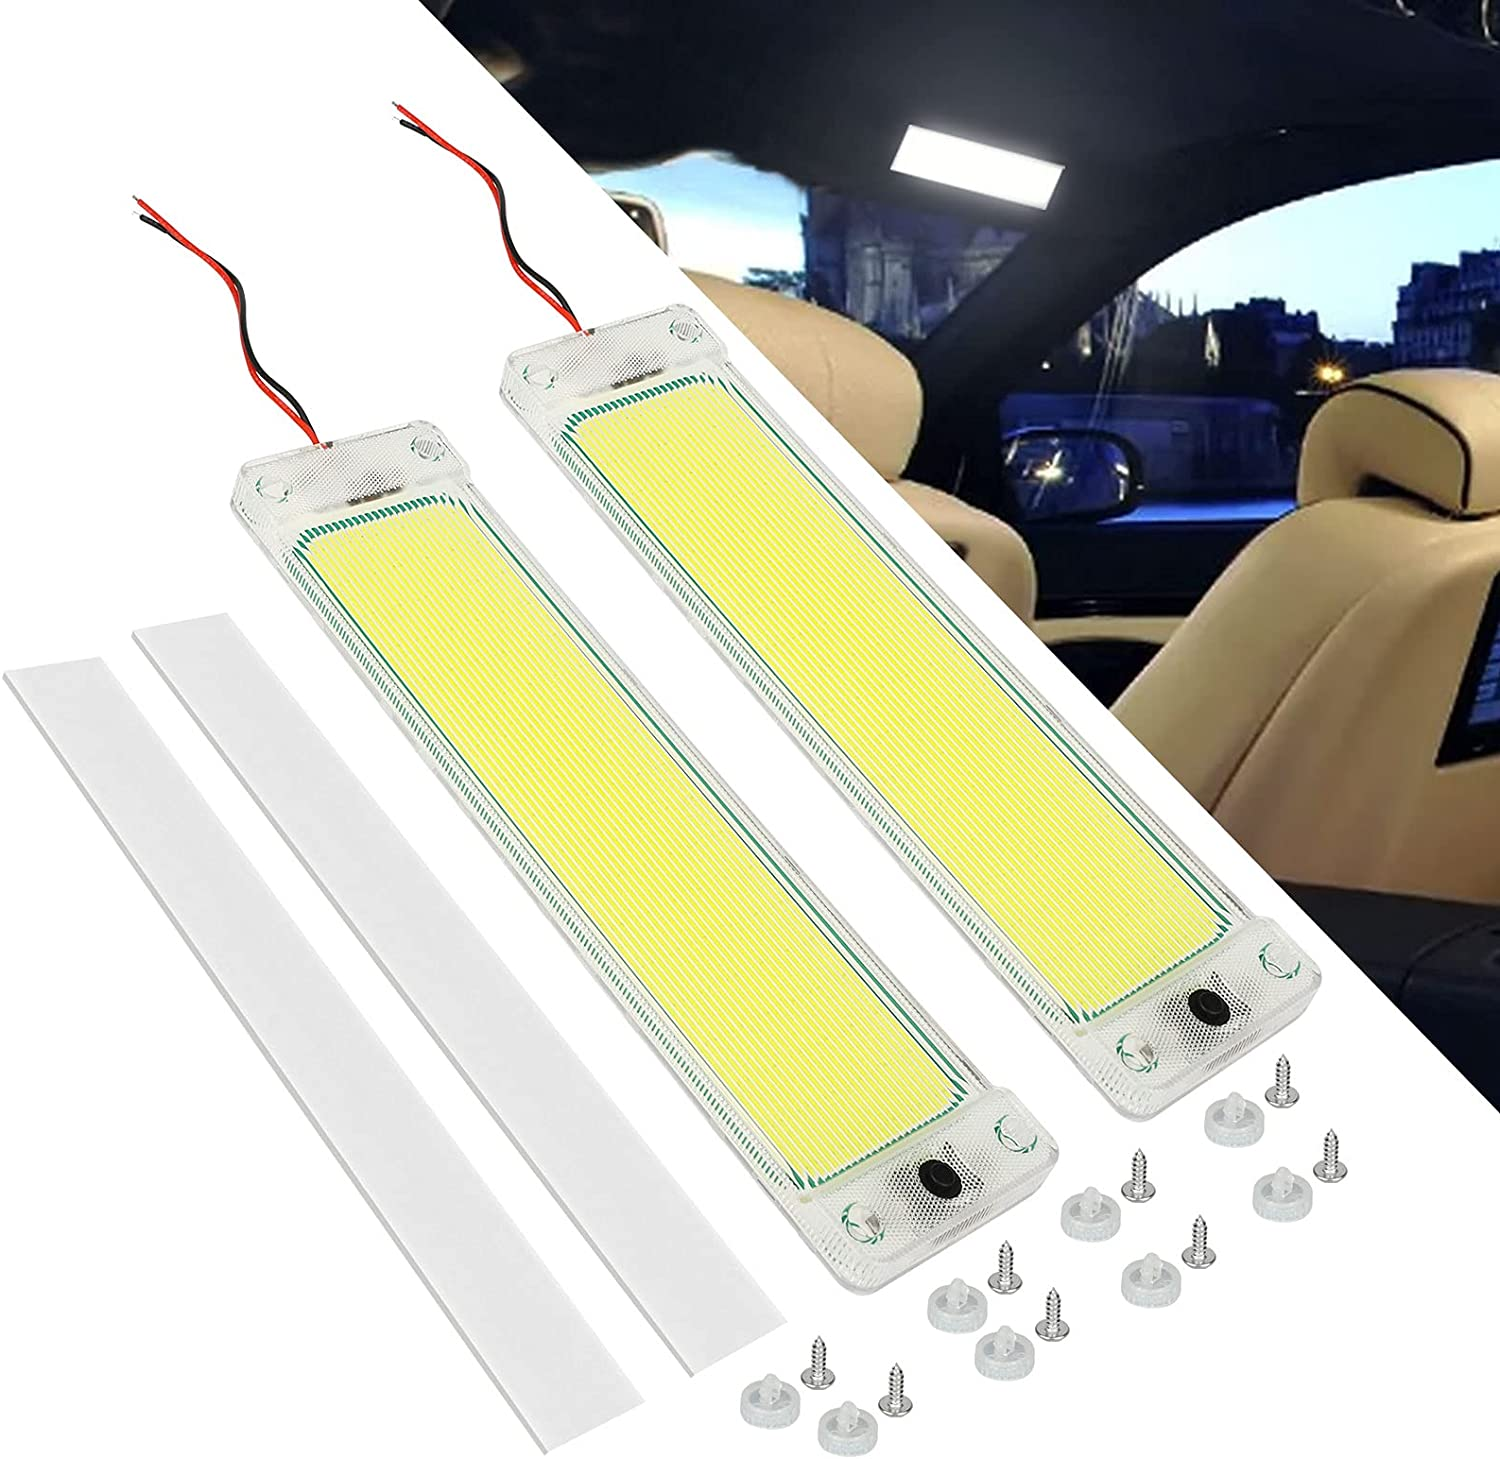 Linkstyle 2Pcs RV Interior Lighting Free shipping anywhere in the nation New item LED Light 12W 1 Bar